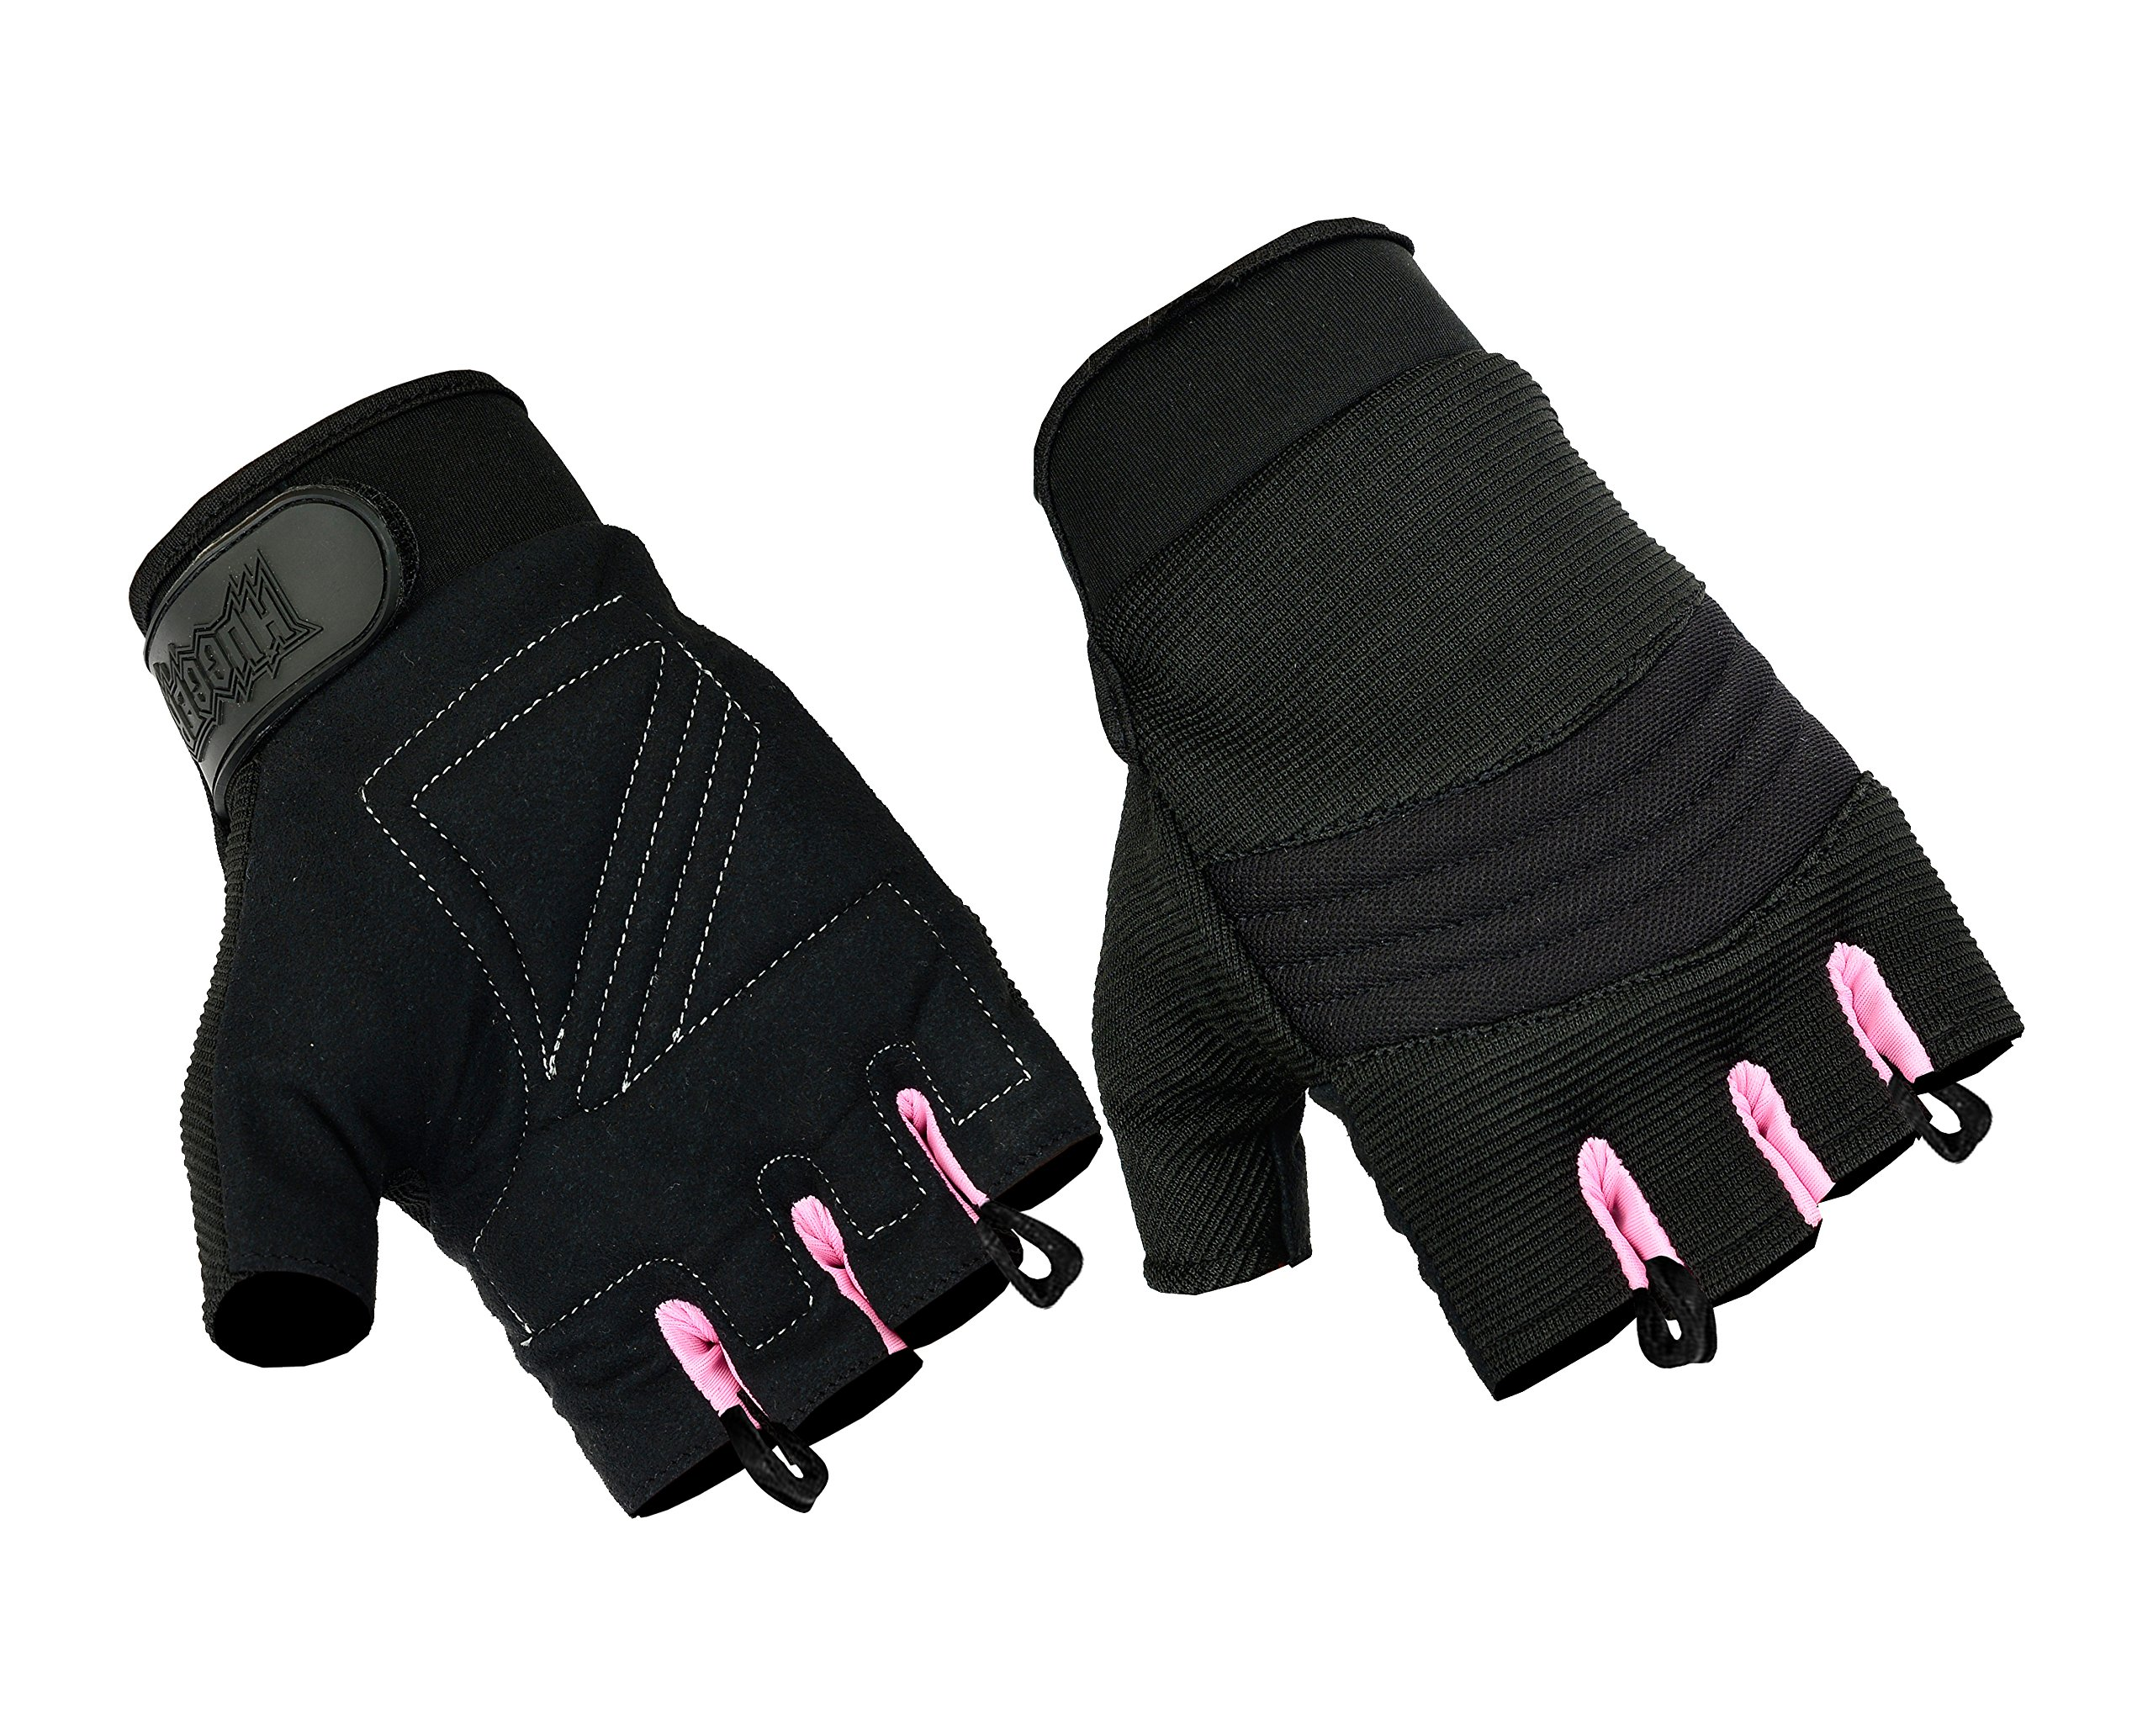 Women's Air Cooled No Sweat Knit Extreme Comfort Fingerless Riding Gloves (Large, Pink/Black)